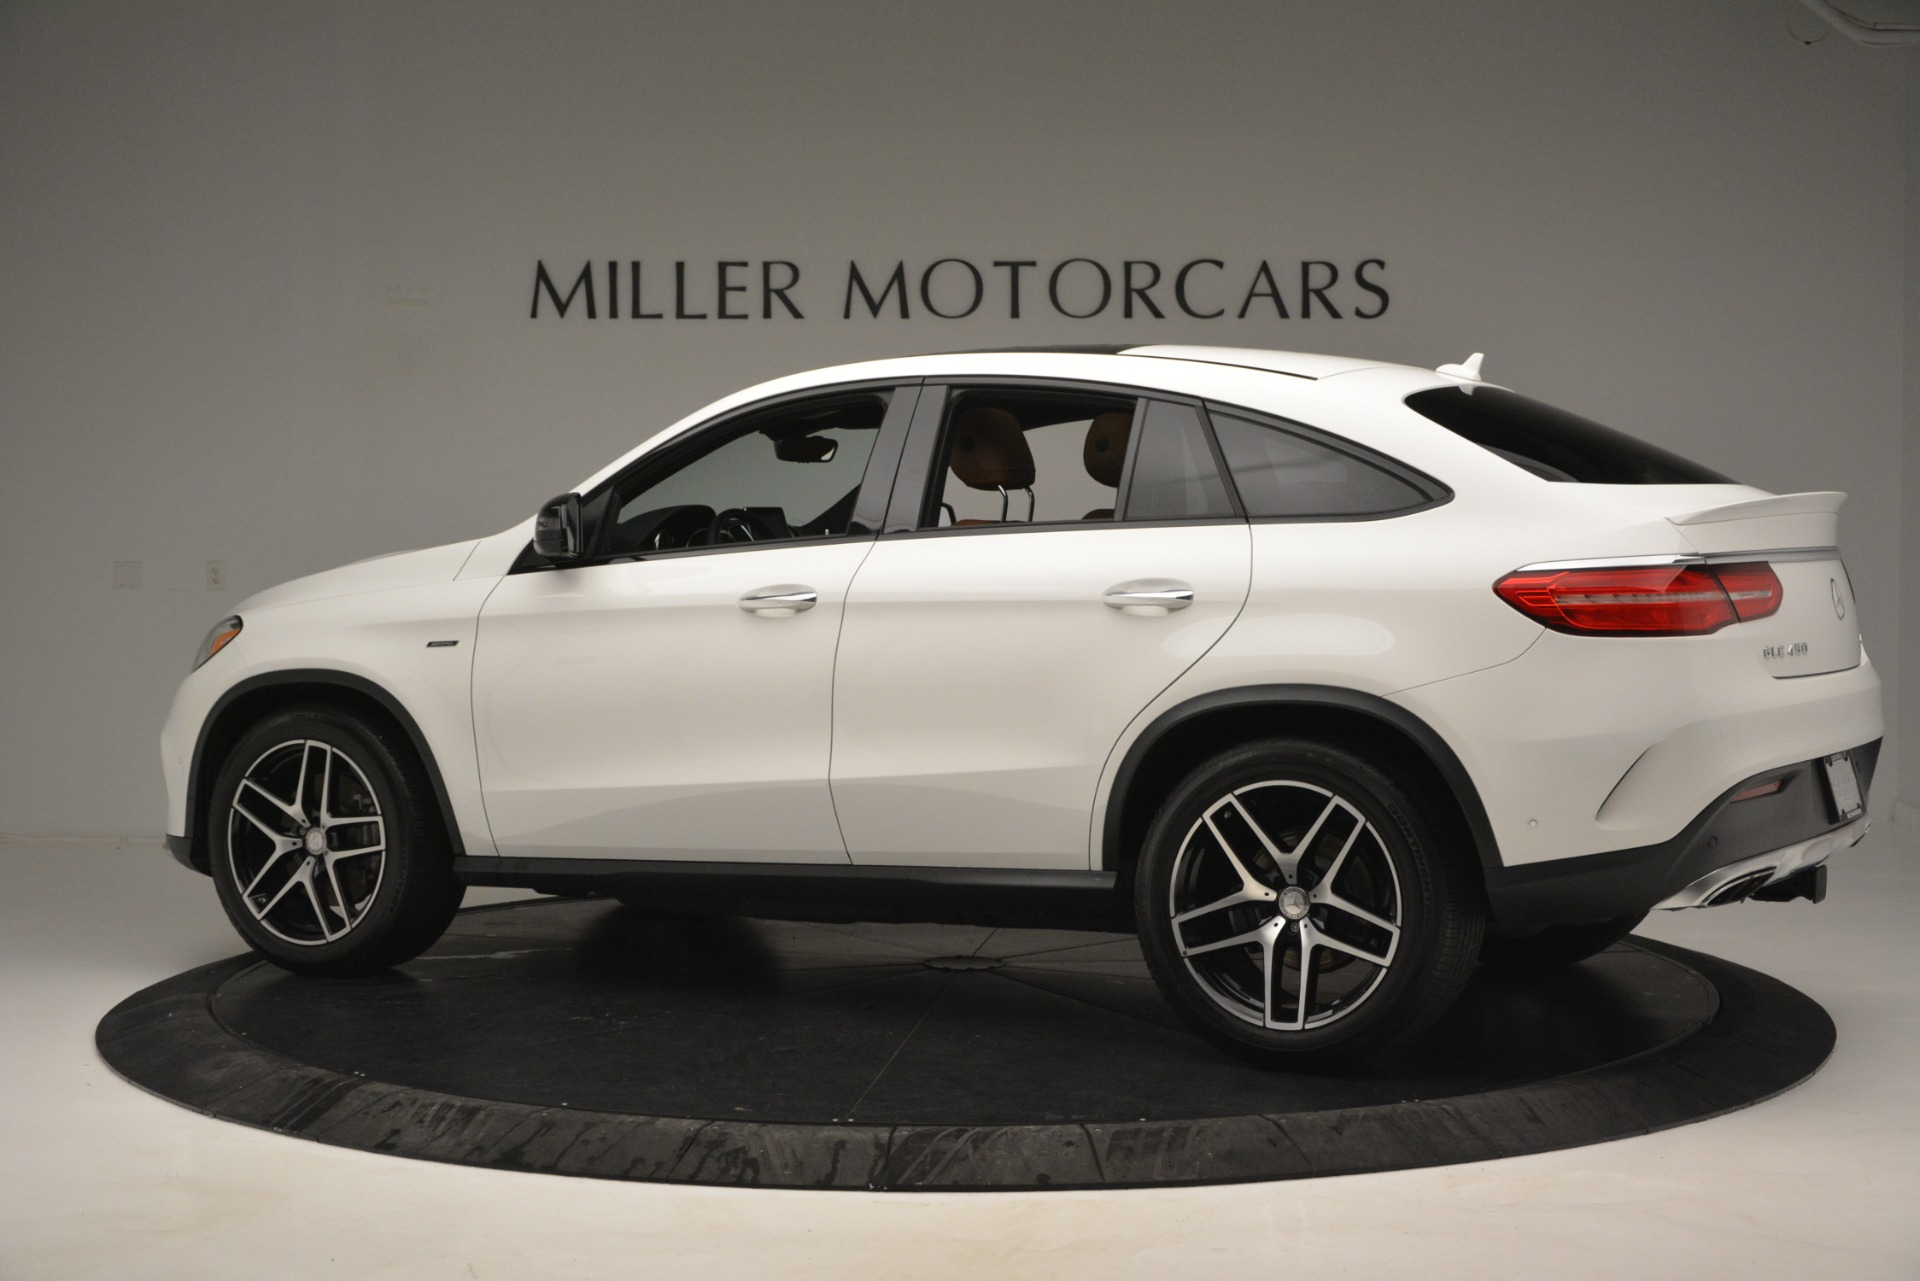 Used 2016 Mercedes-Benz GLE 450 AMG Coupe 4MATIC For Sale In Westport, CT 2787_p4